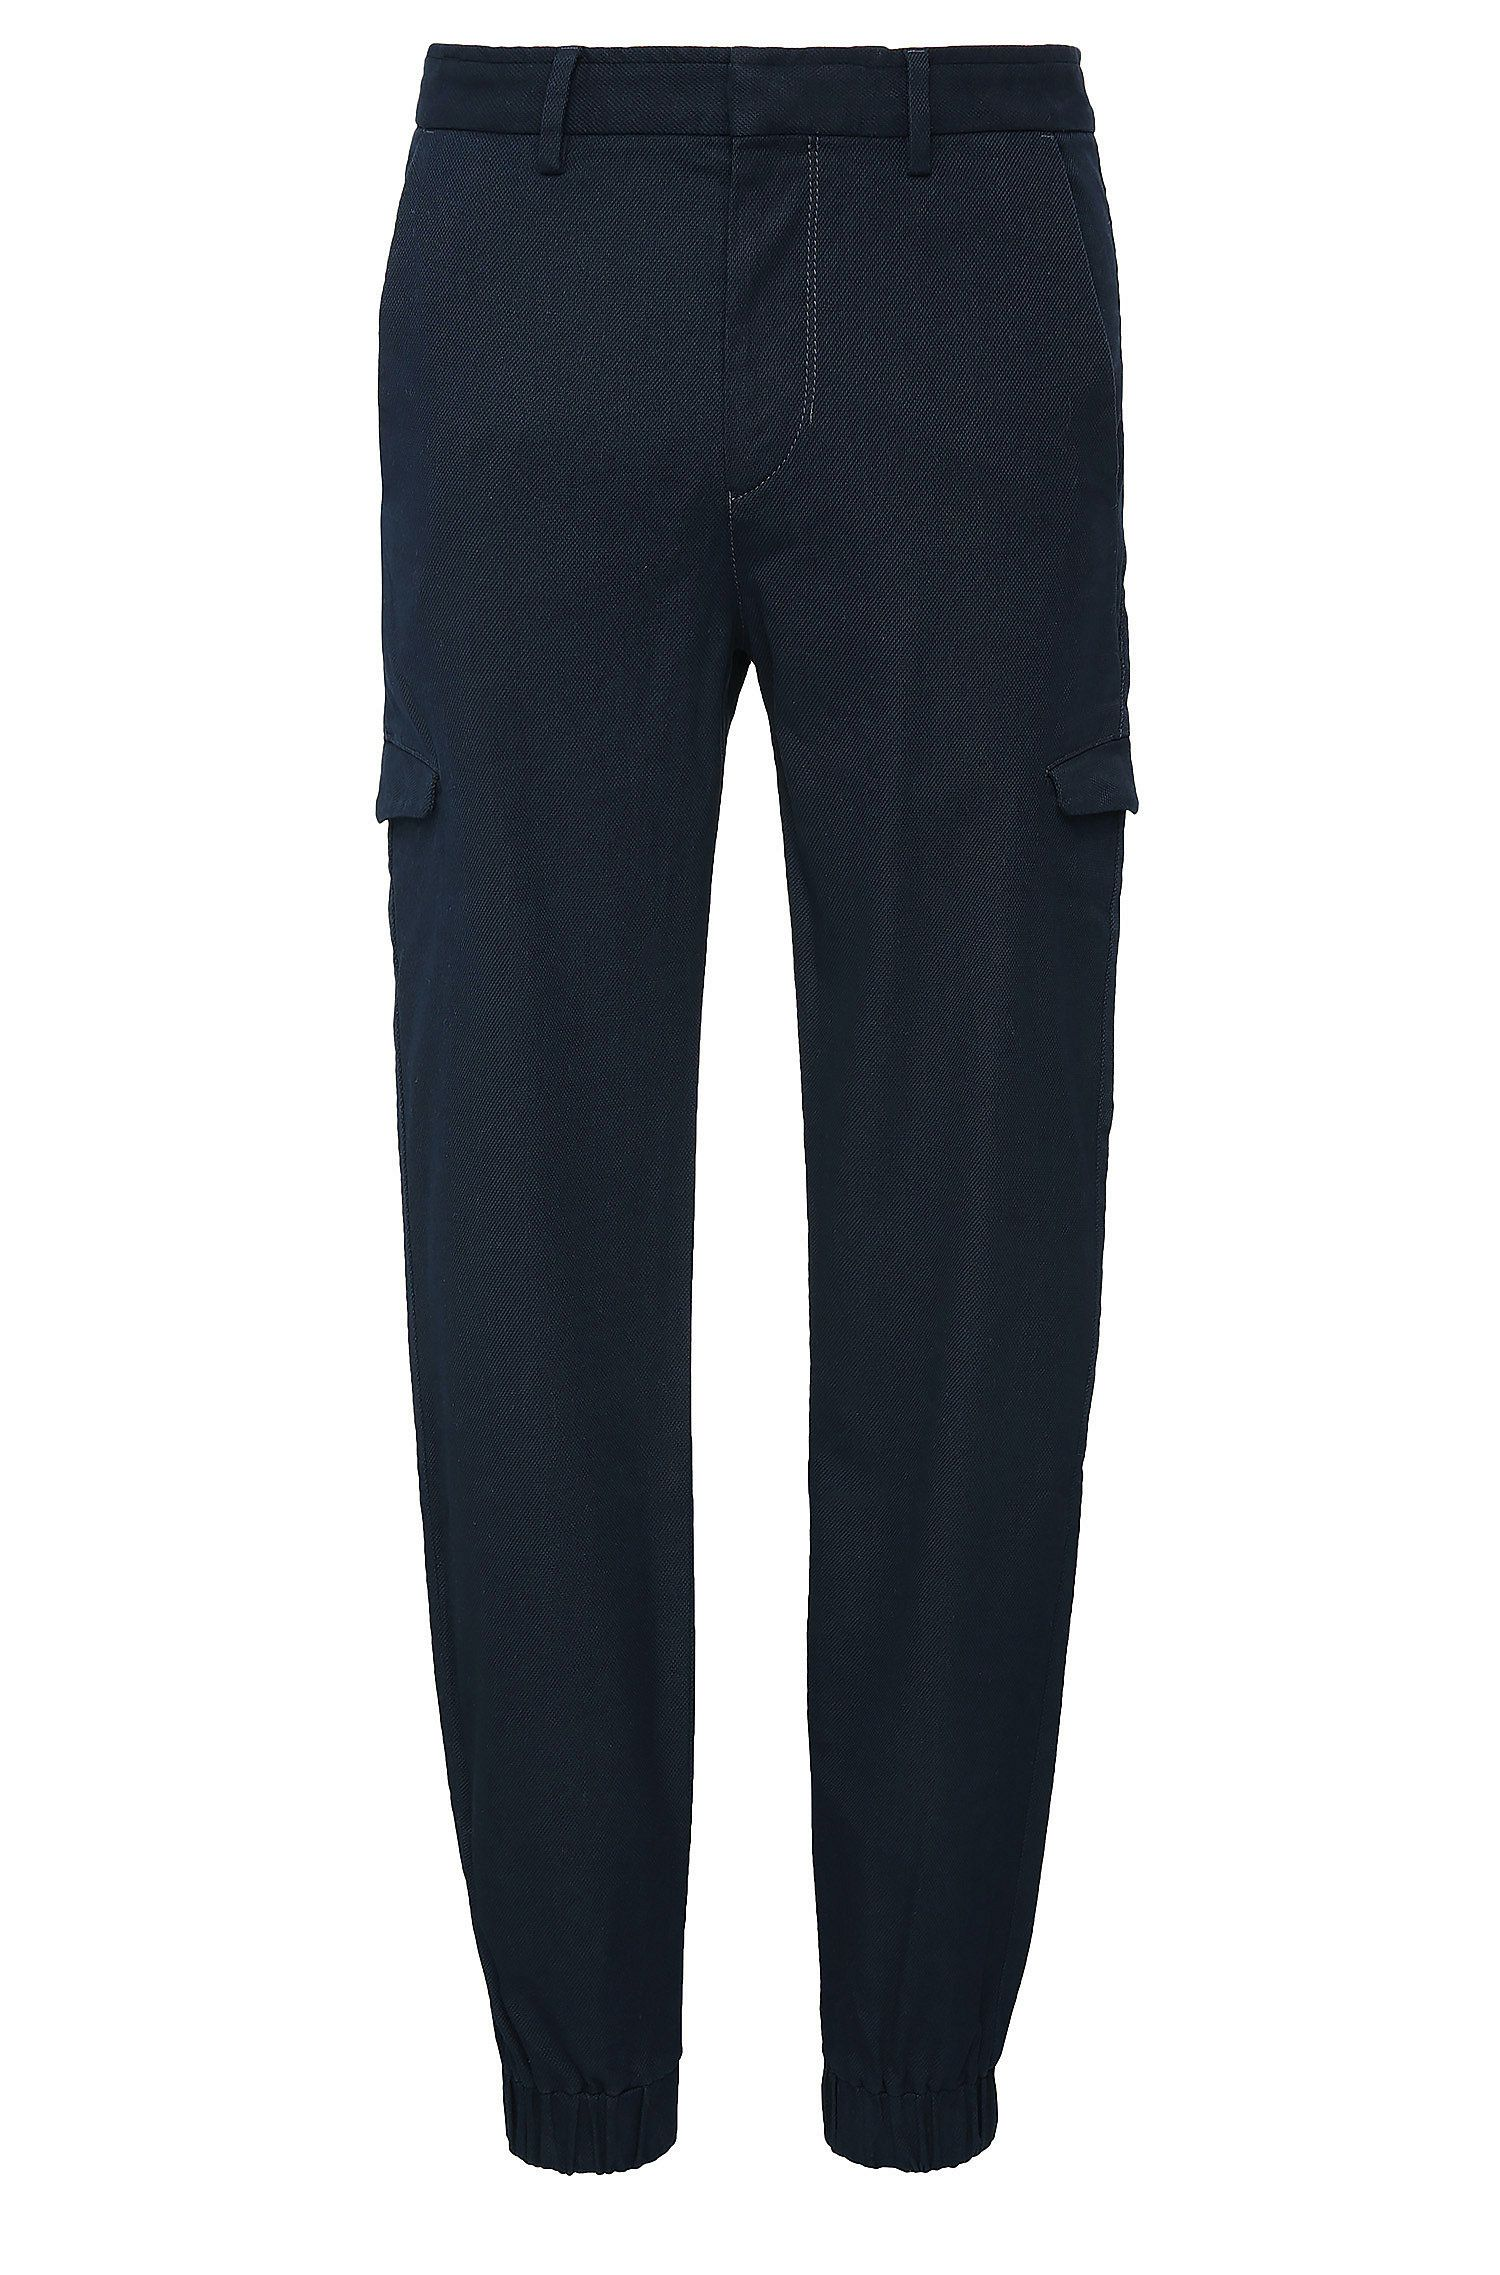 'Loomes-W' | Slim Fit, Cotton Cargo Pants